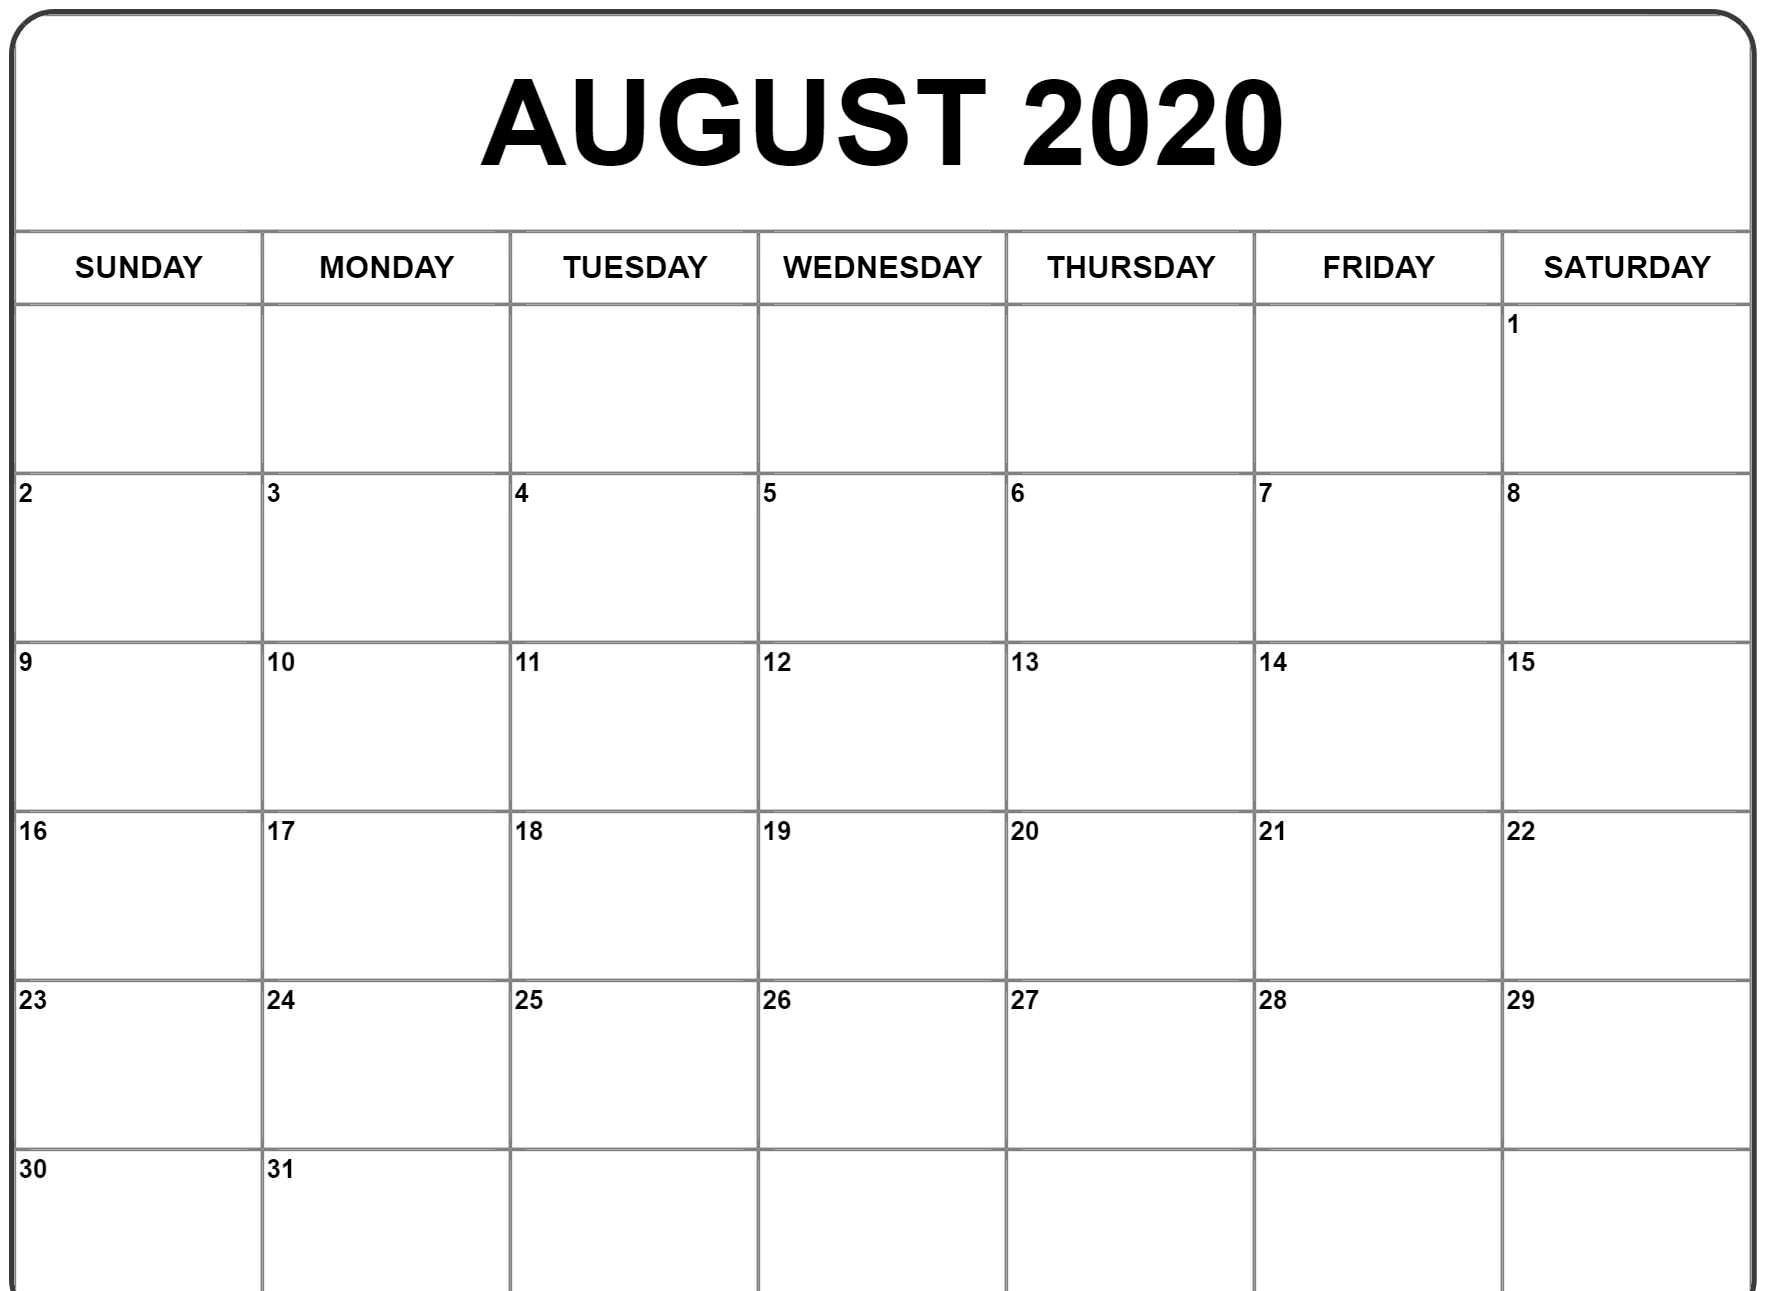 August 2020 Calendar Pdf, Word, Excel Printable Template  August 2020 Calendar With Lines